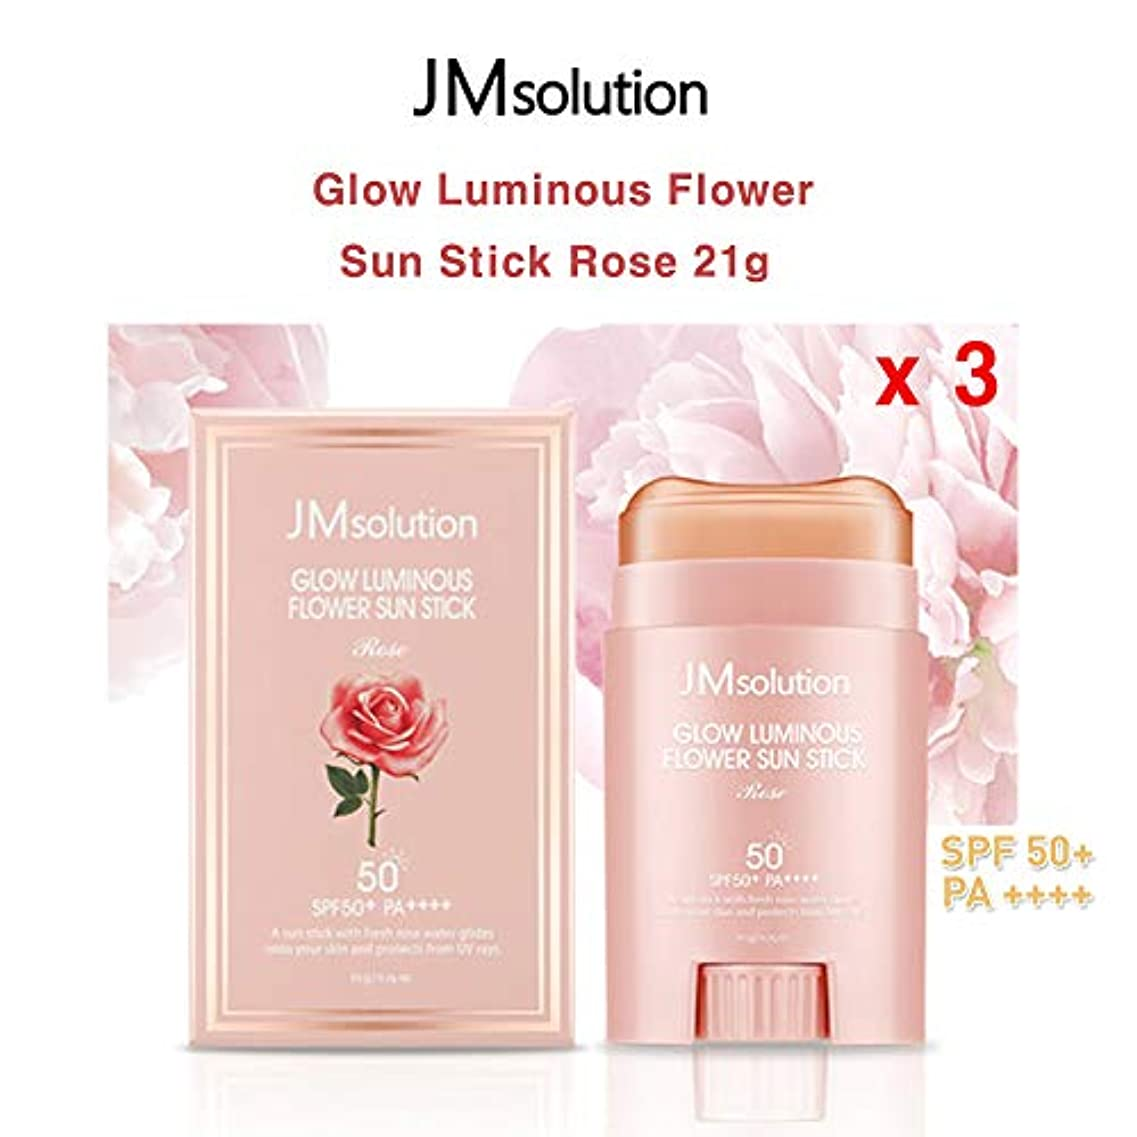 スピーカー状関係するJM Solution ★1+1+1★ Glow Luminous Flower Sun Stick Rose 21g (spf50 PA) 光る輝く花Sun Stick Rose